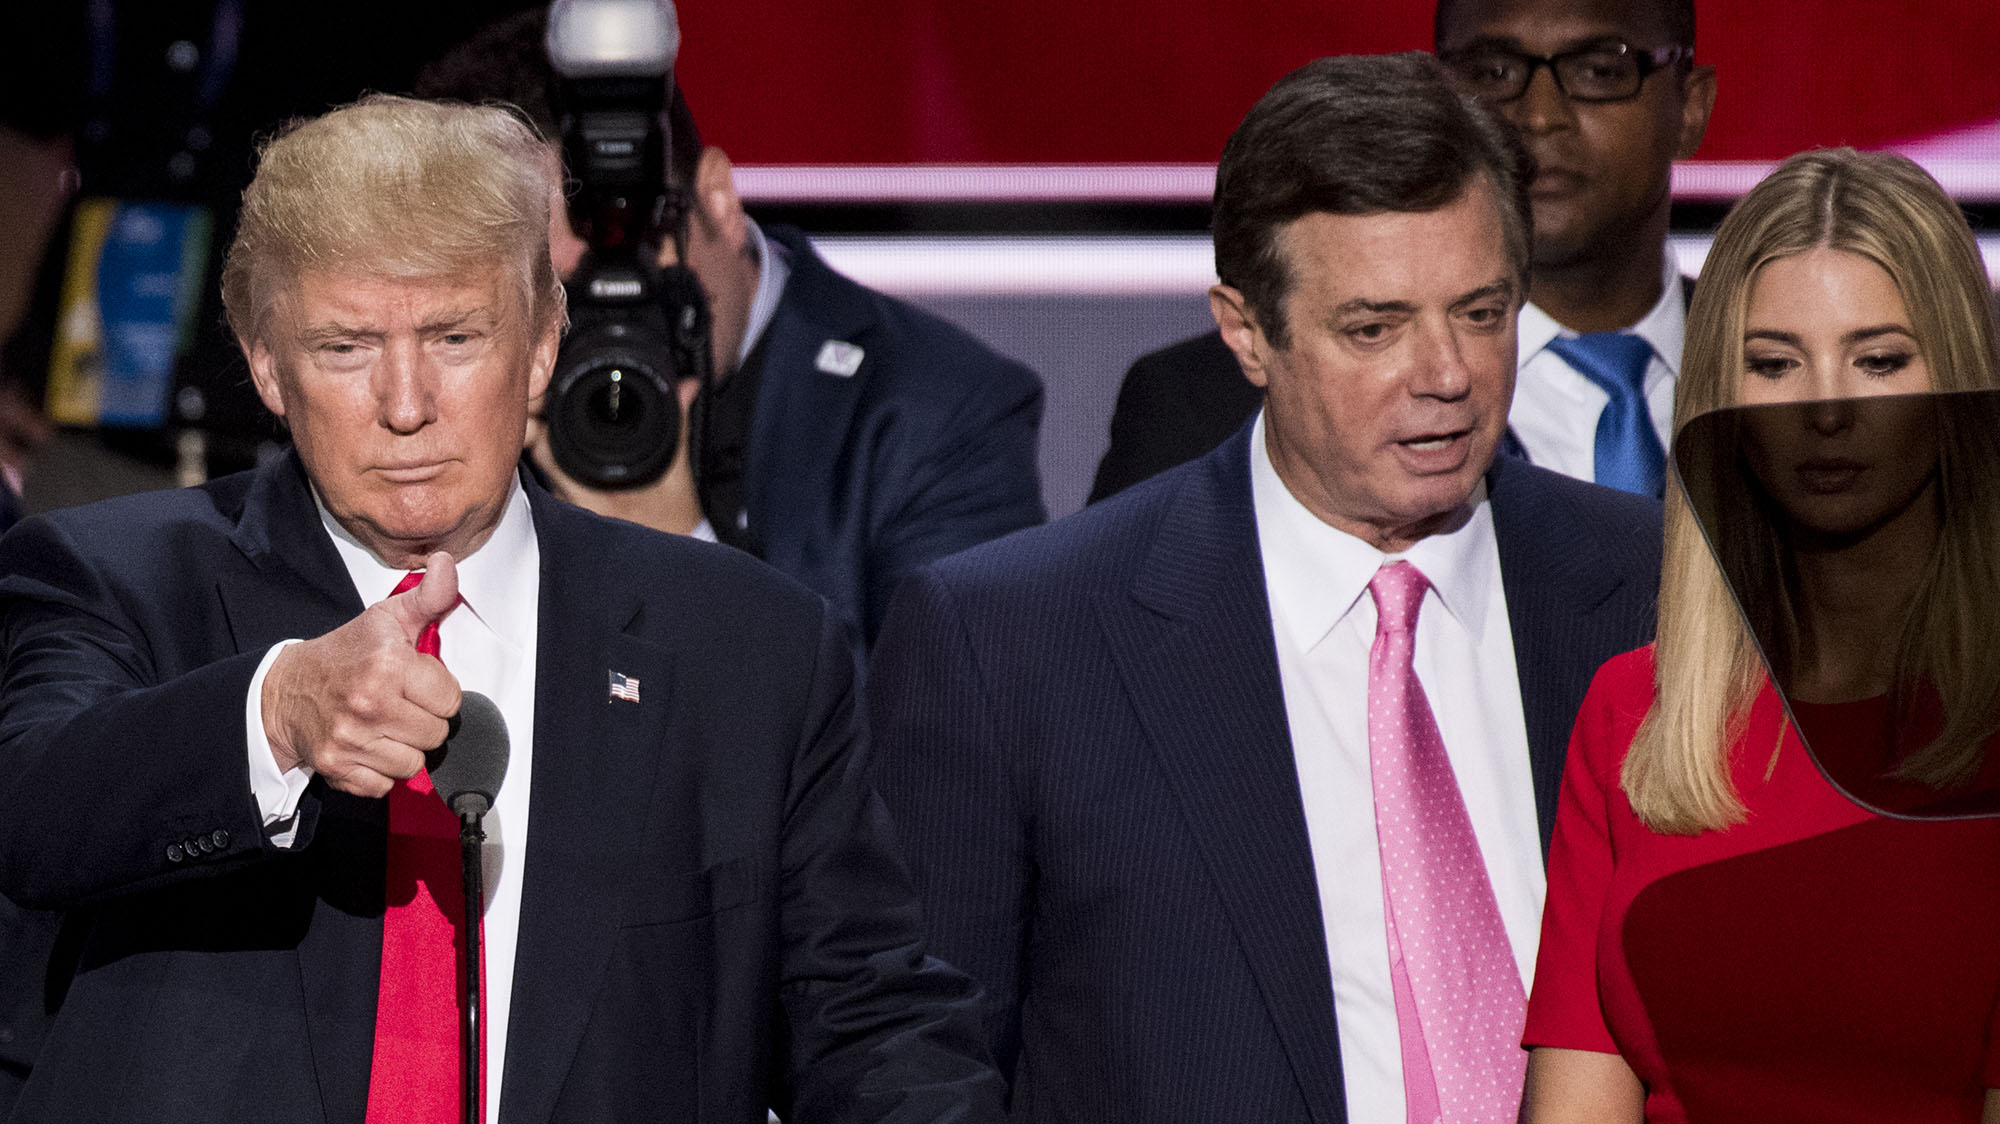 Authorities Wiretapped Trump Campaign Manager Paul Manafort Twice